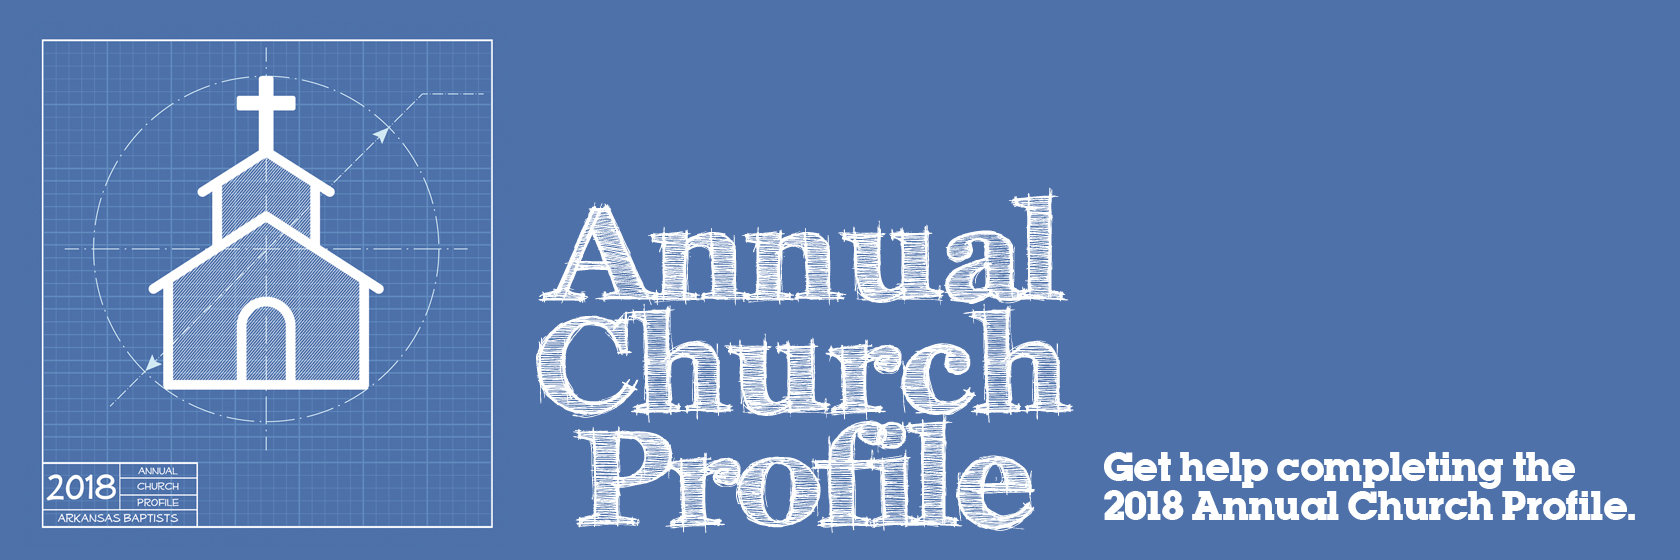 Follow along with the video to complete your 2018 Annual Church Profile